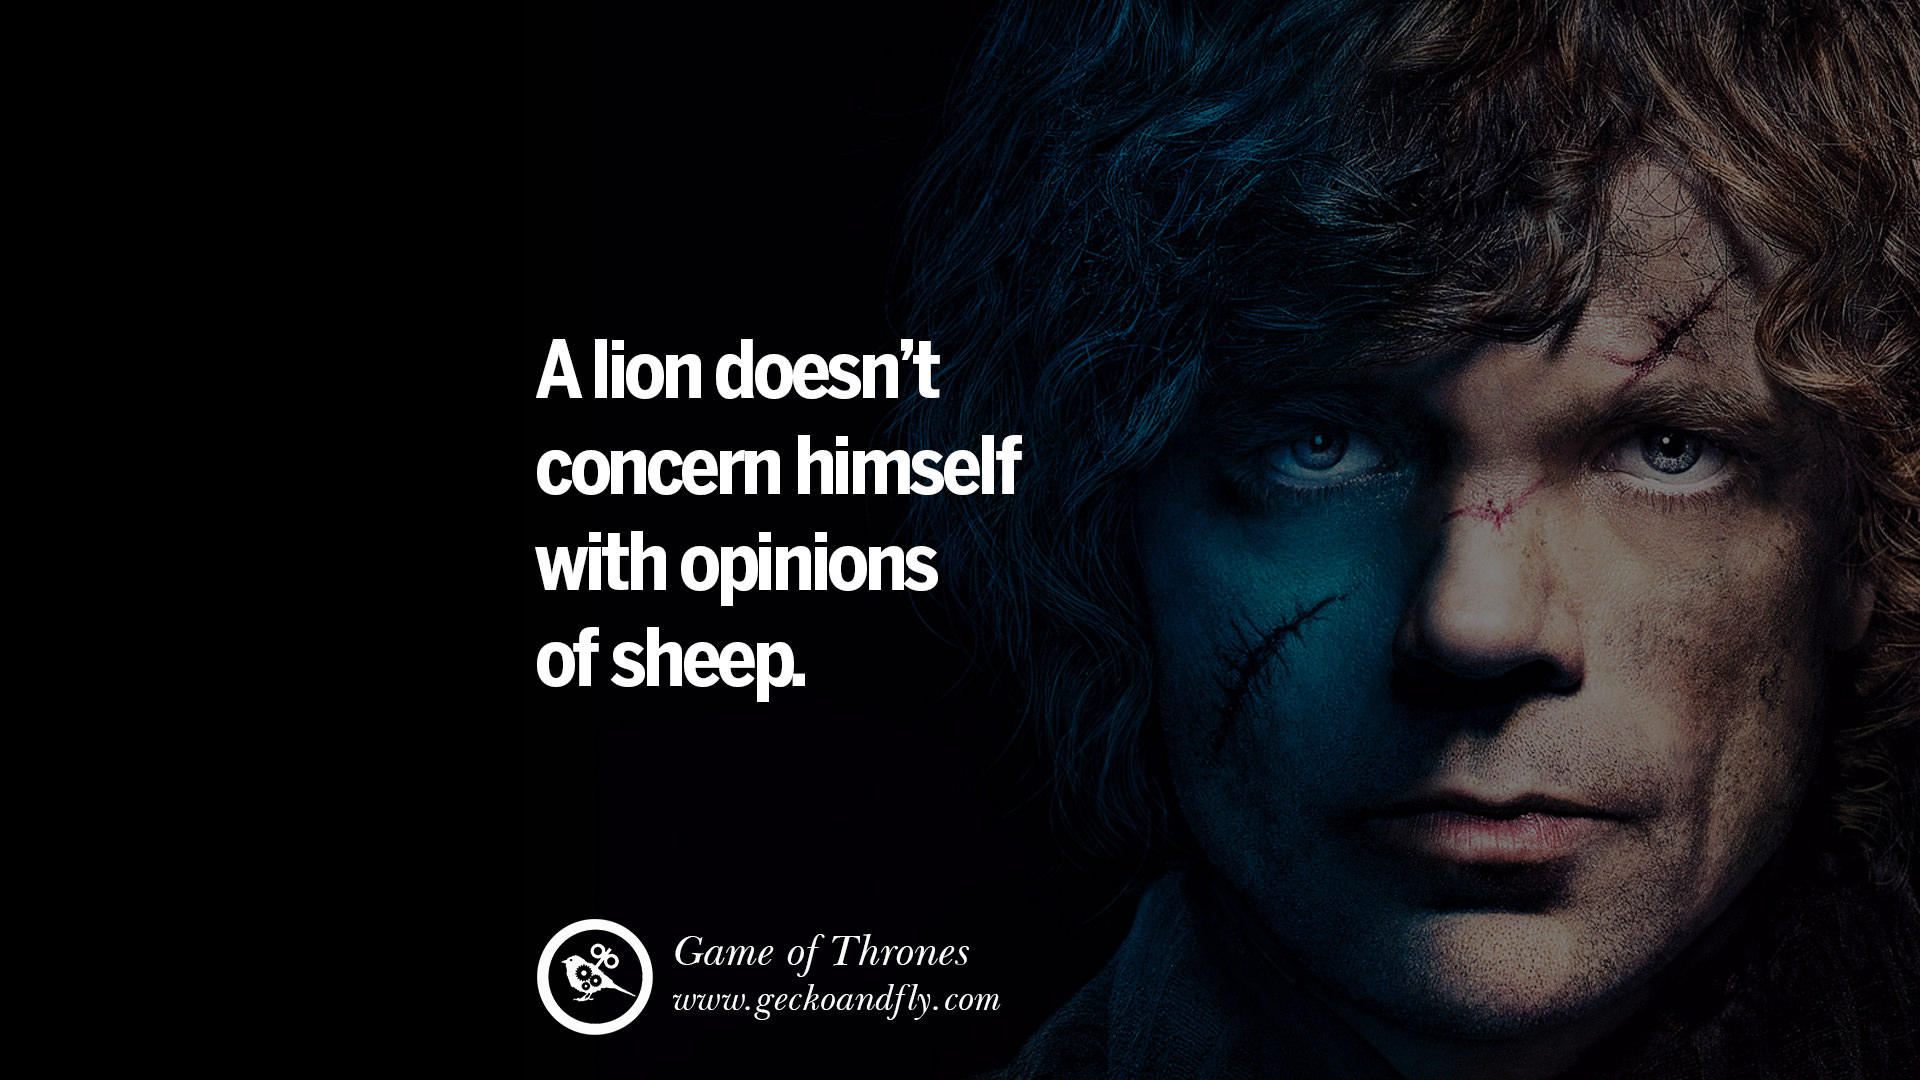 lion wallpaper quotes. 15 memorable game of thrones quotes by george martin on love, death, power and life lion wallpaper